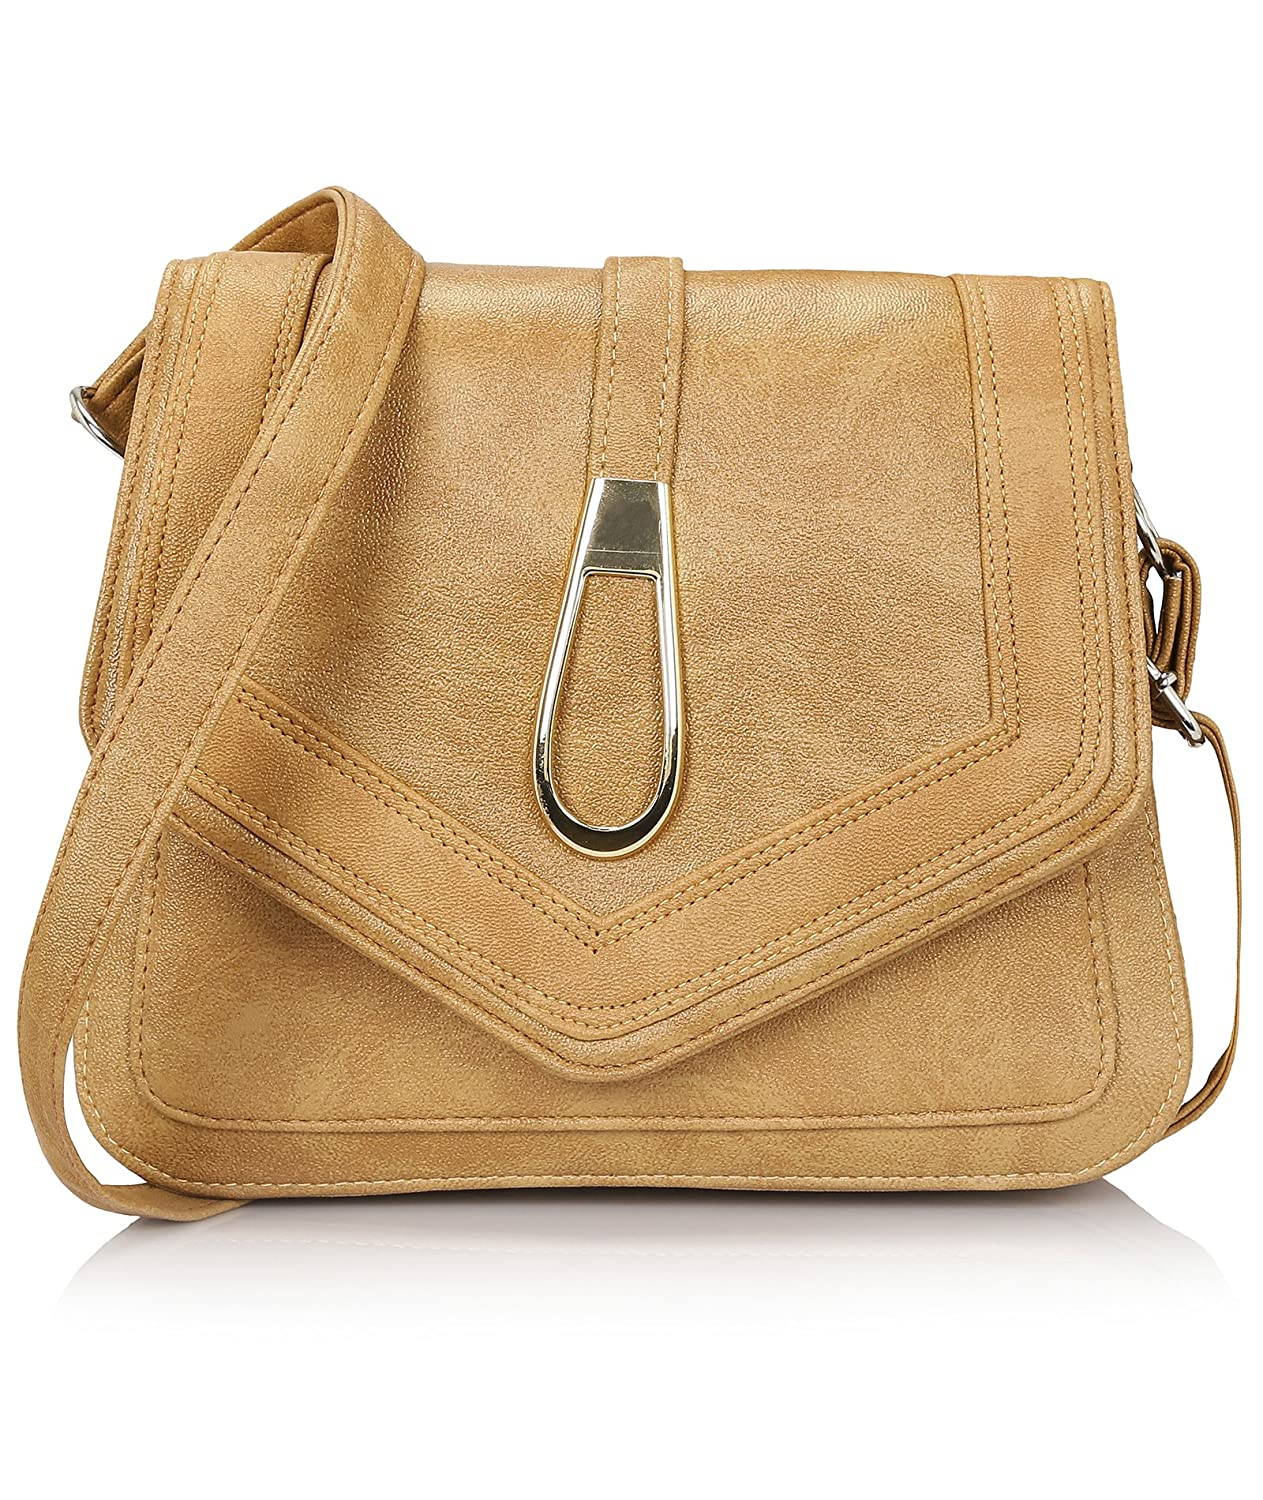 e9f4419fc0 Amazon.com  Kleio Stylish Trendy Faux Leather Crossbody Shoulder Purse Bag  For Women Ladies Girls (Beige)  Shoes